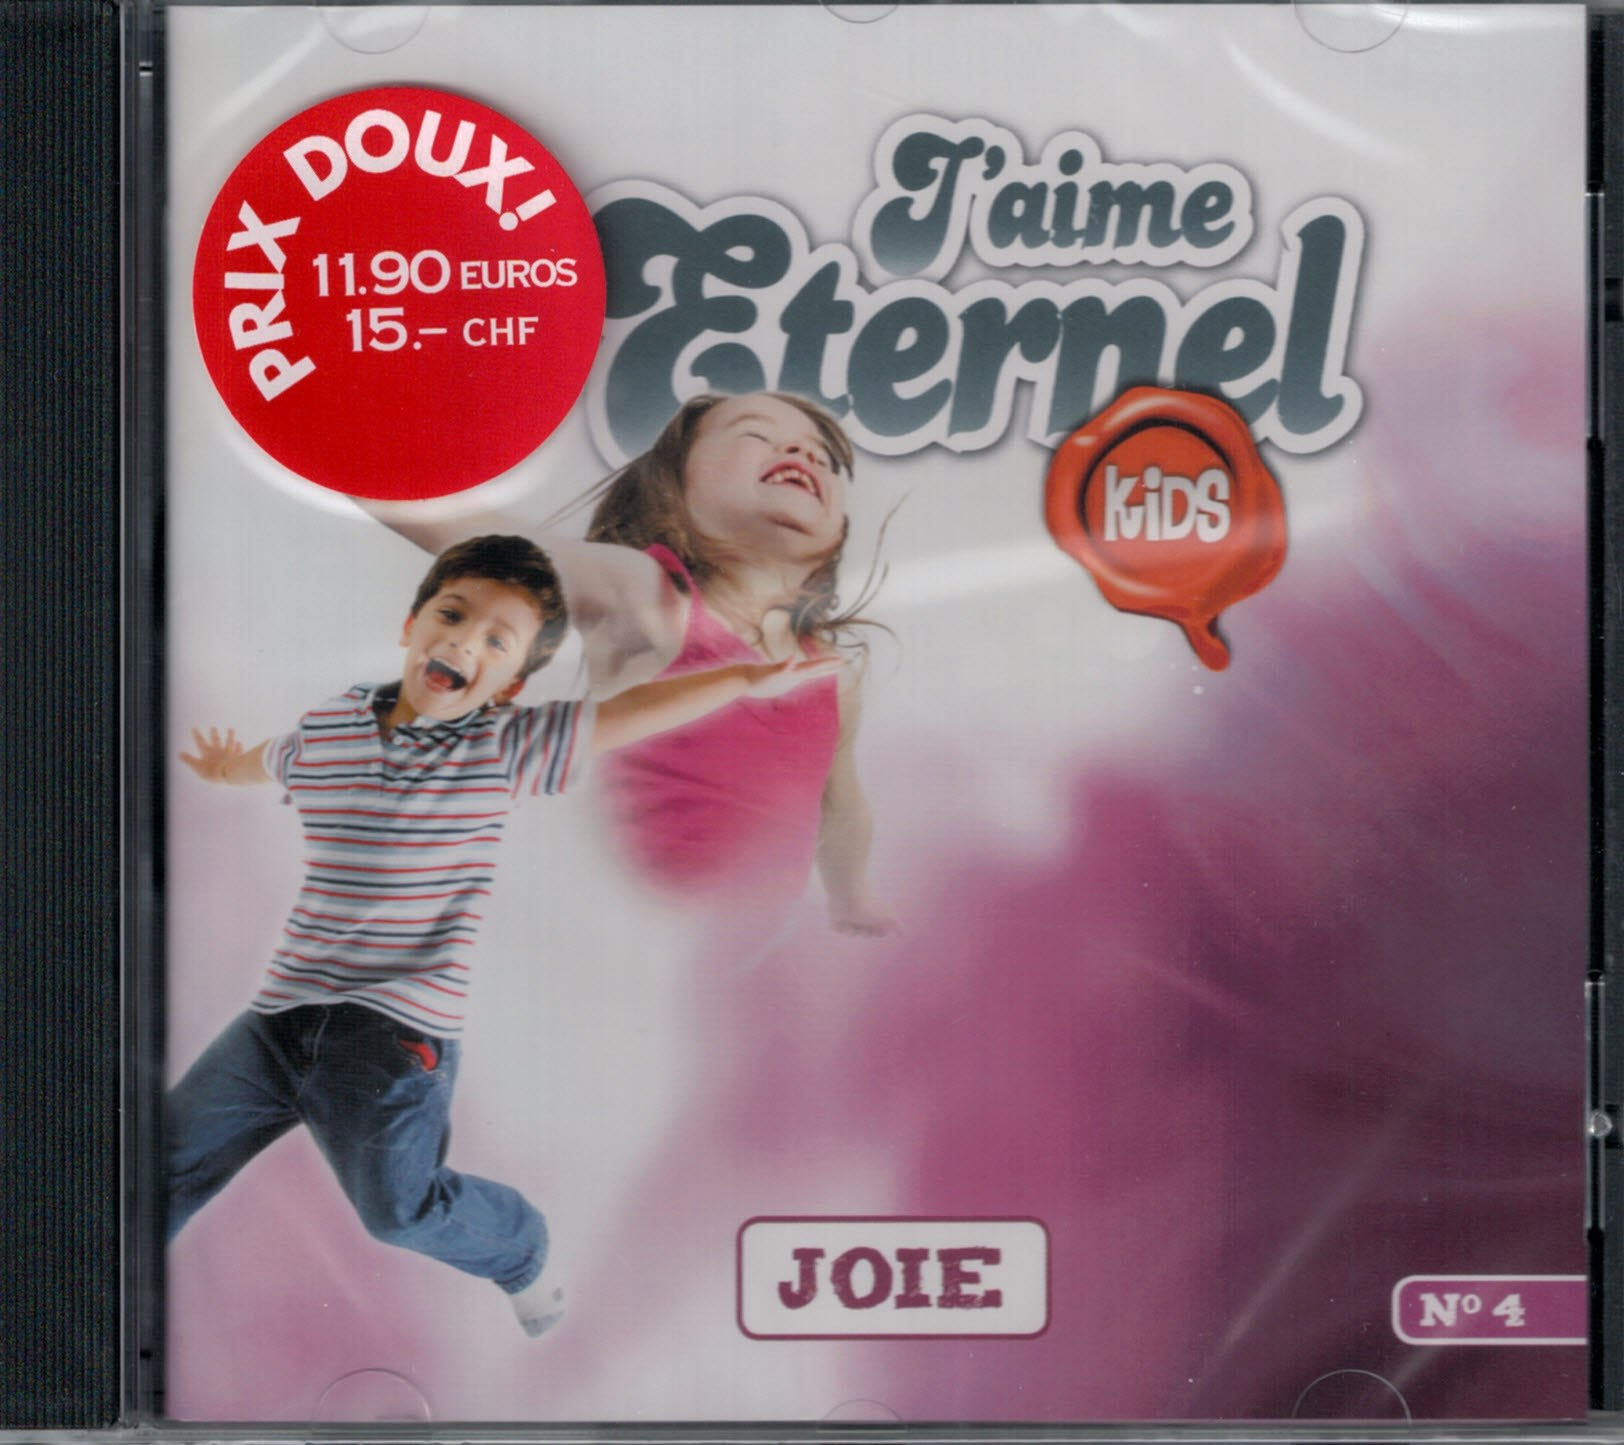 CD J'aime l'Éternel Kids no 4